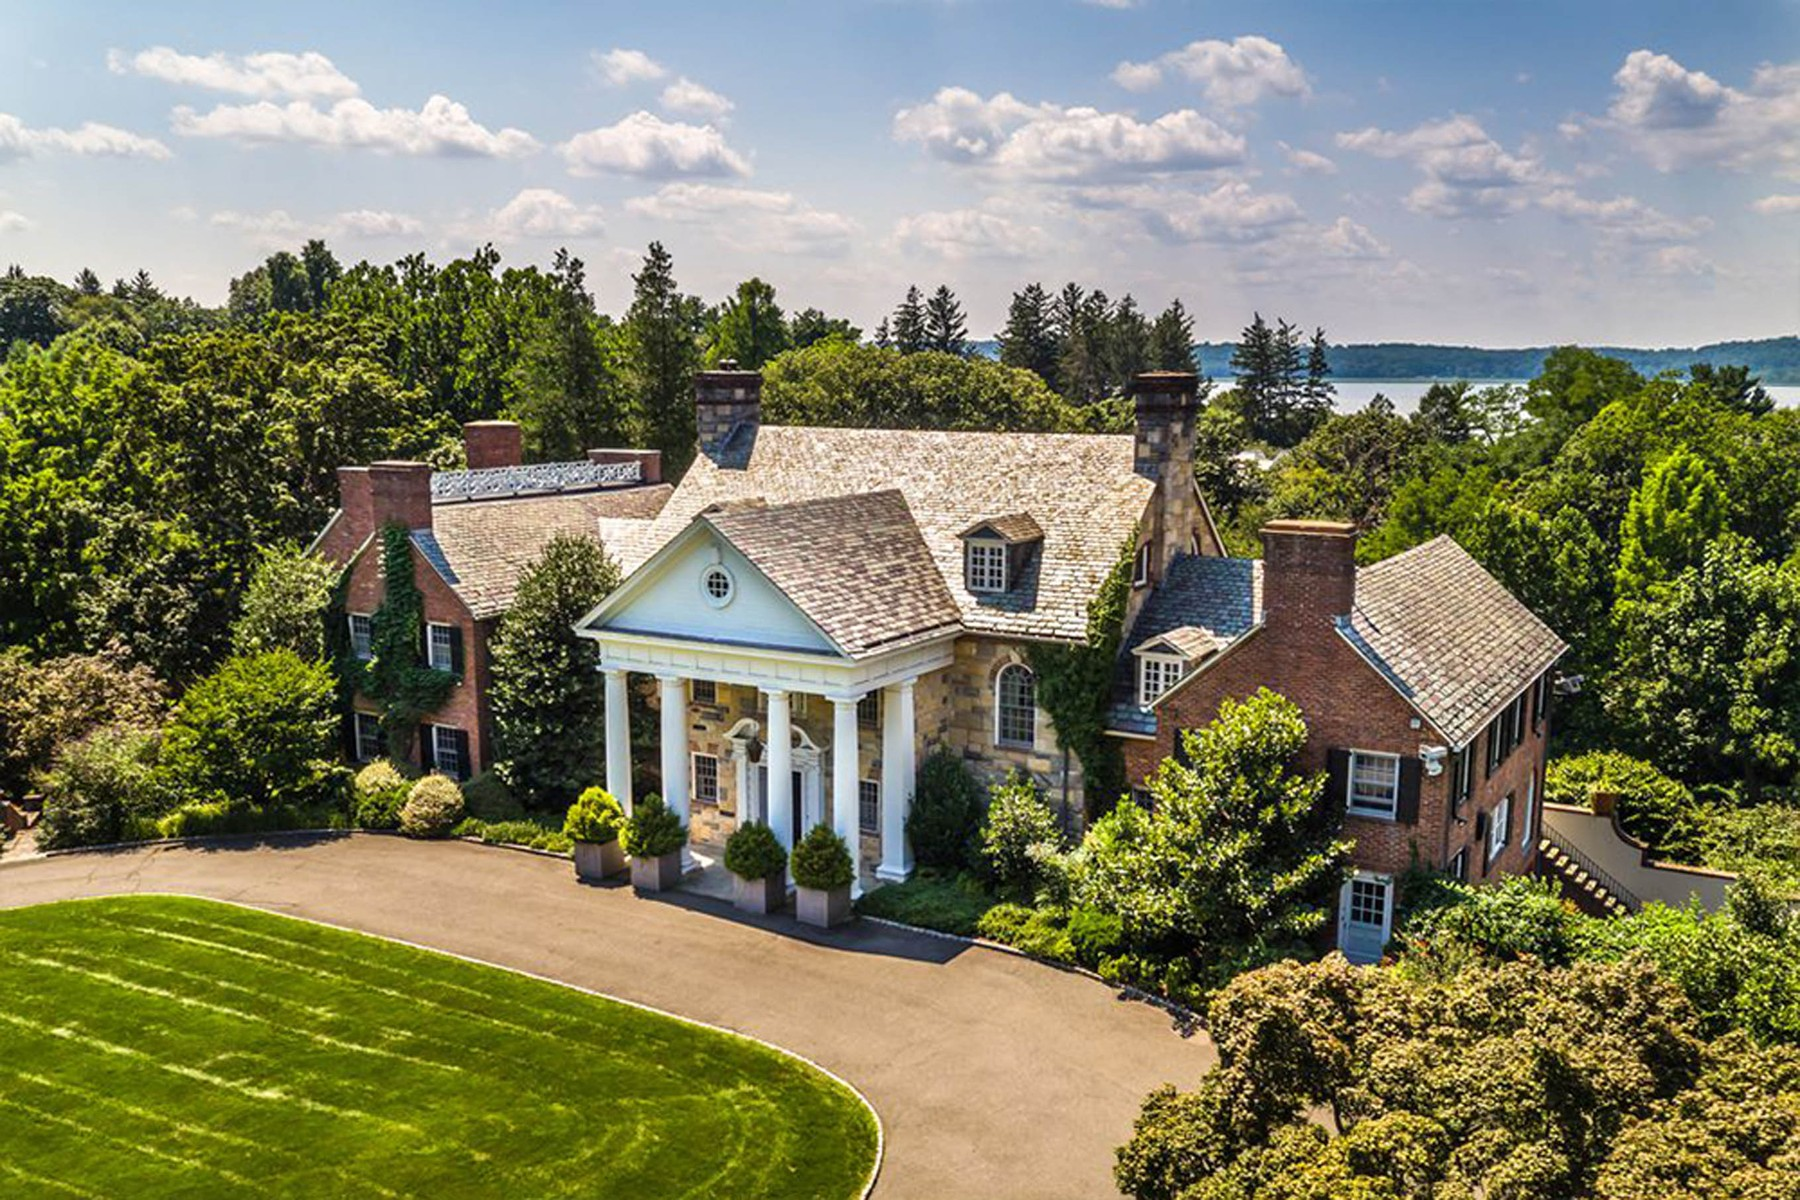 10-9-2019  Michael Douglas and Catherine Zeta-Jones have bought this house in Irvington, New York for .5 million. With 11,653 square feet of living space, there are 8 bedrooms, 10 full and 2 half bathrooms. Just 25 miles outside Manhattan and built in the early 1930s, the 22-room sits on 12 acres of land. Special features include an indoor swimming pool, fitness room, games lounge and seven fireplaces.  Pictured: Michael Douglas and Catherine Zeta-Jones's home, Image: 470108682, License: Rights-managed, Restrictions: , Model Release: no, Credit line: Profimedia, Planet